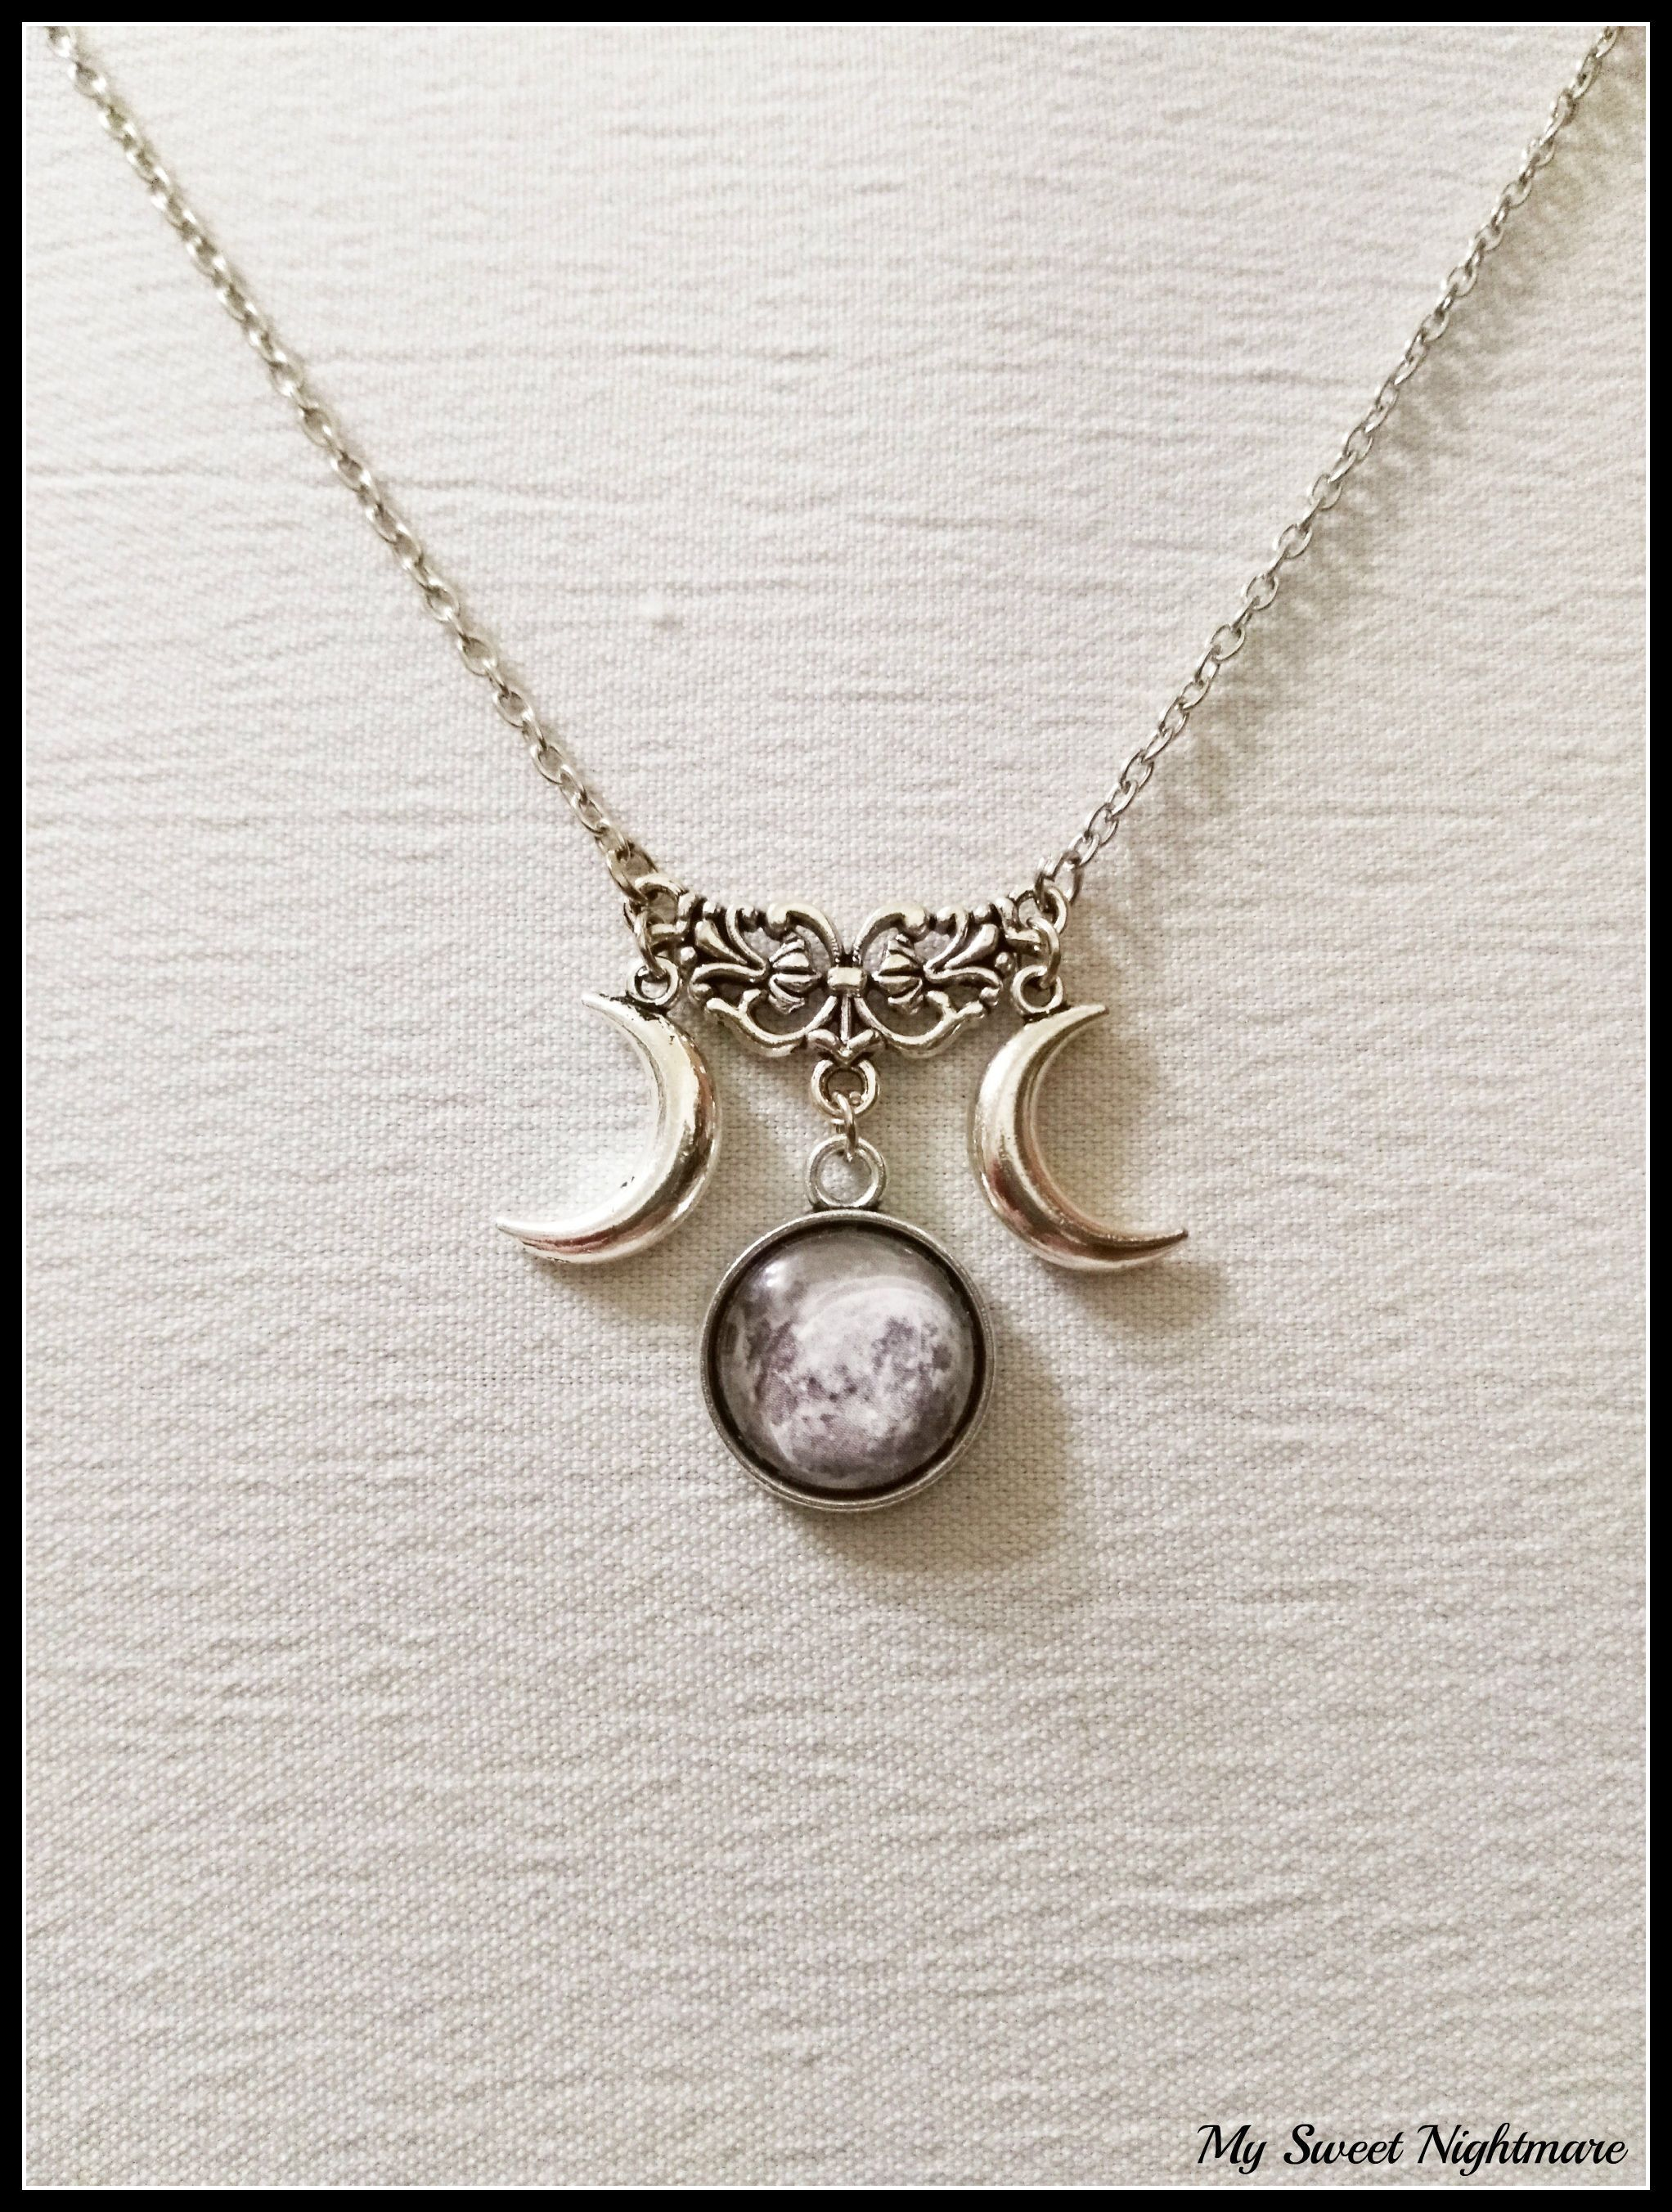 silver shipping moon jewelry product sterling today overstock goddess pendant on collection box chain necklace carolina glamour watches triple inch free